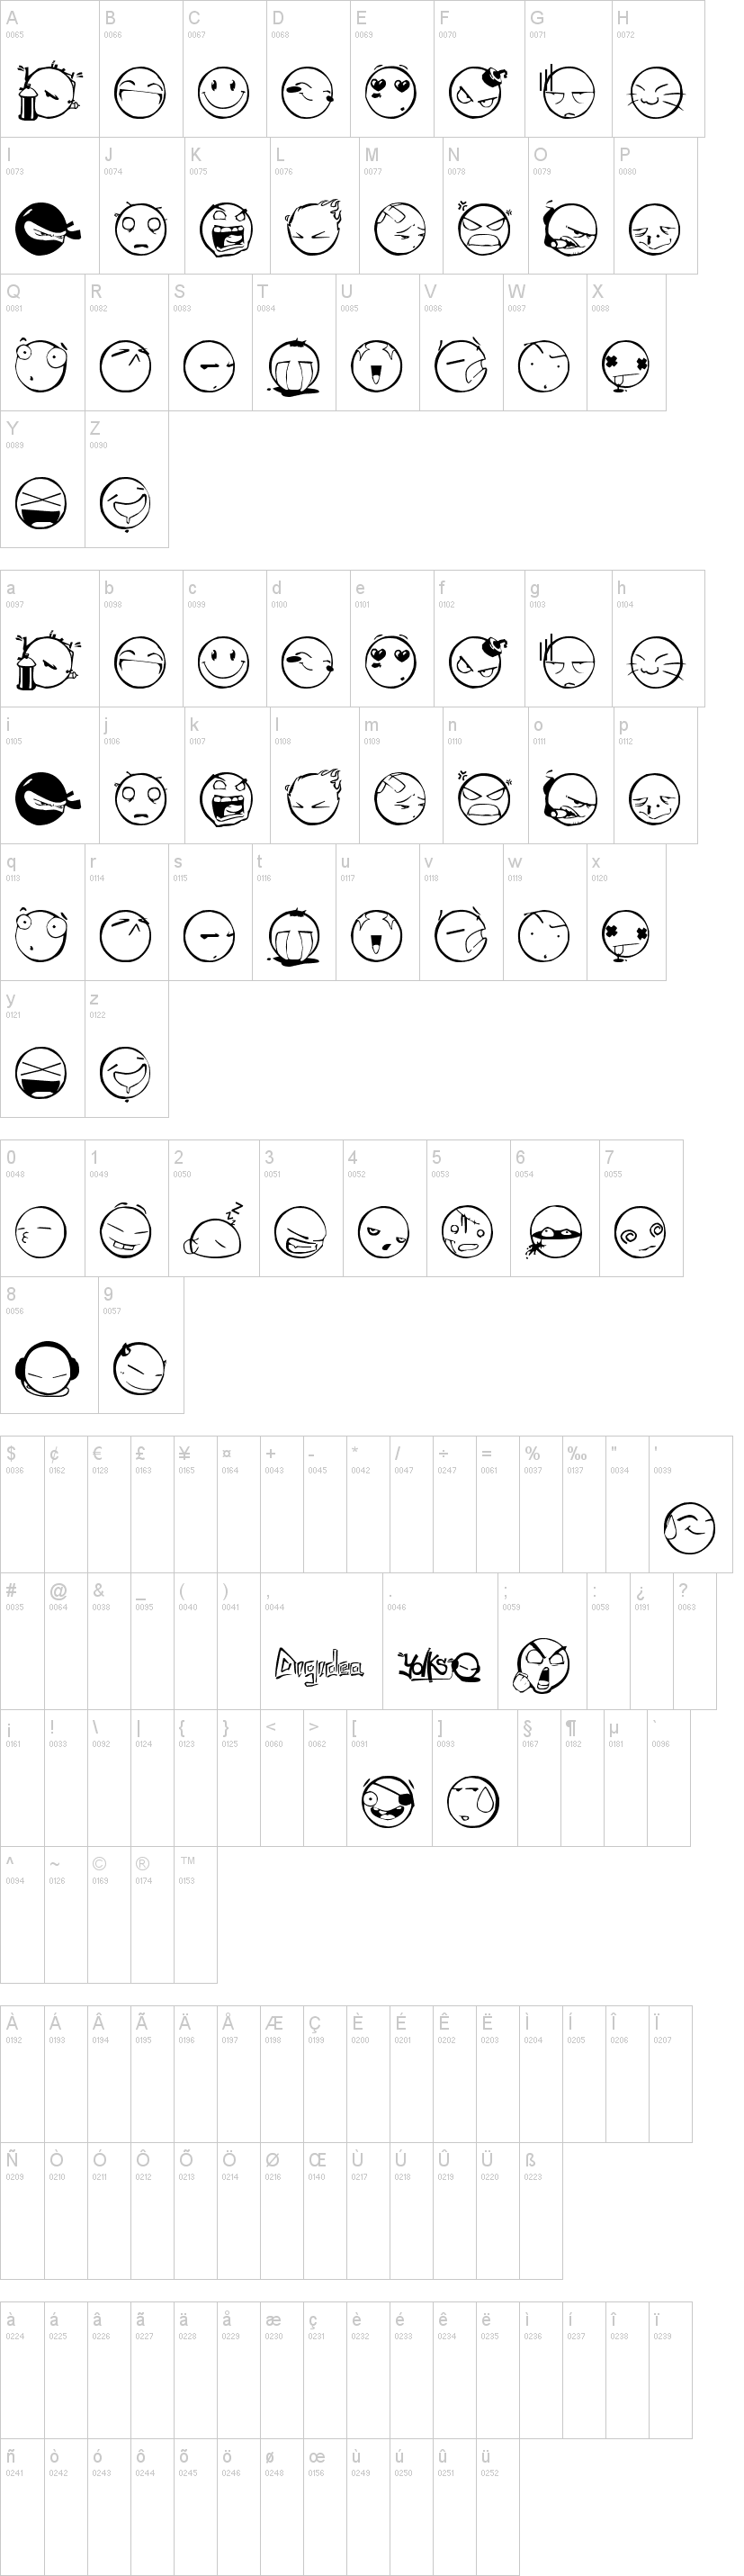 DIST Yolks Emoticons